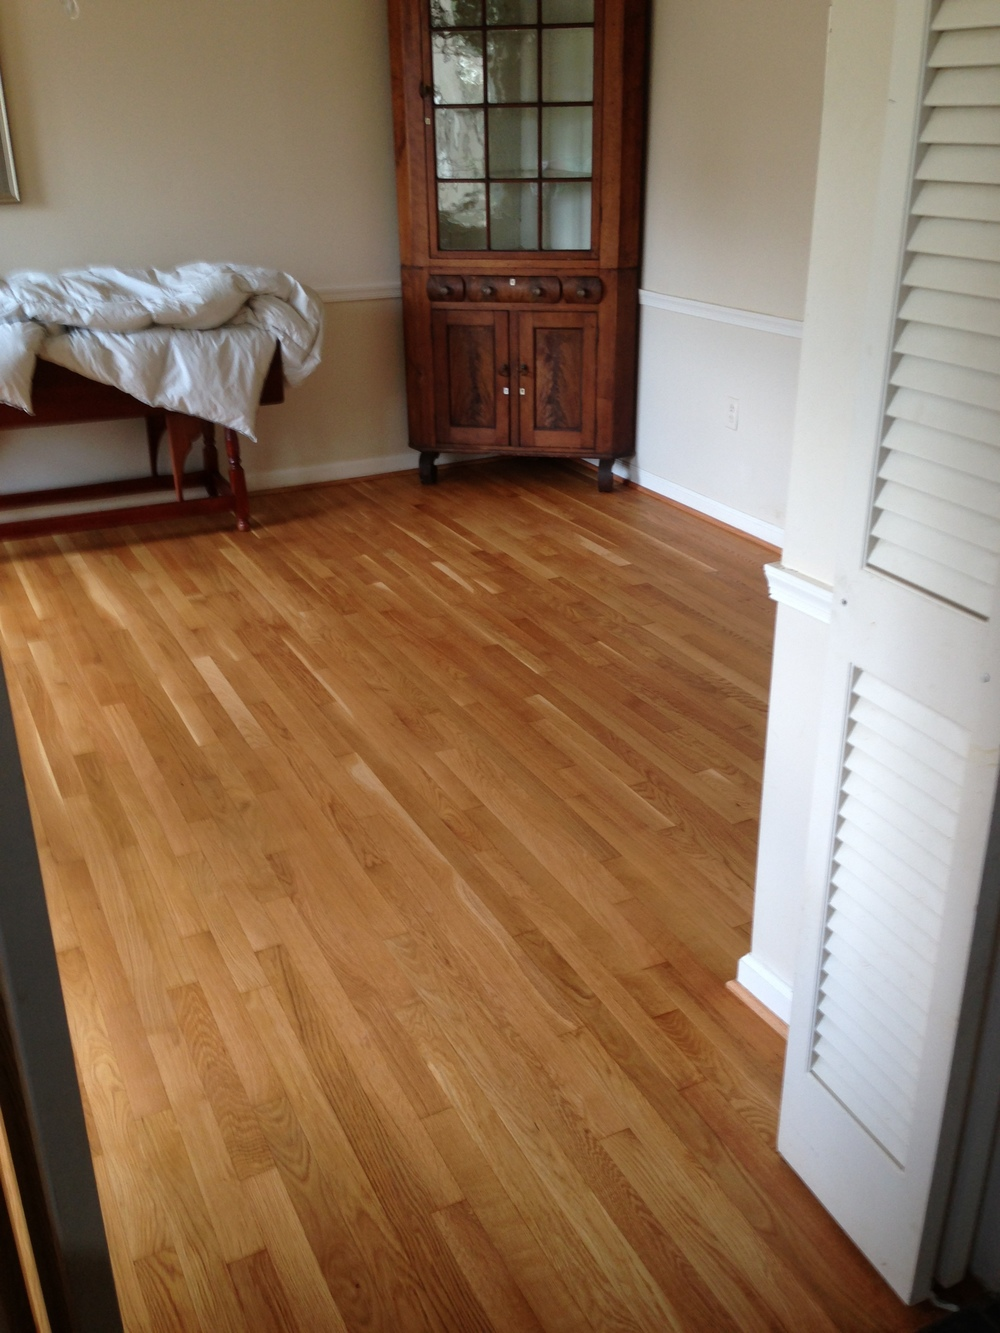 1 - White Oak Swedish Finish II.JPG